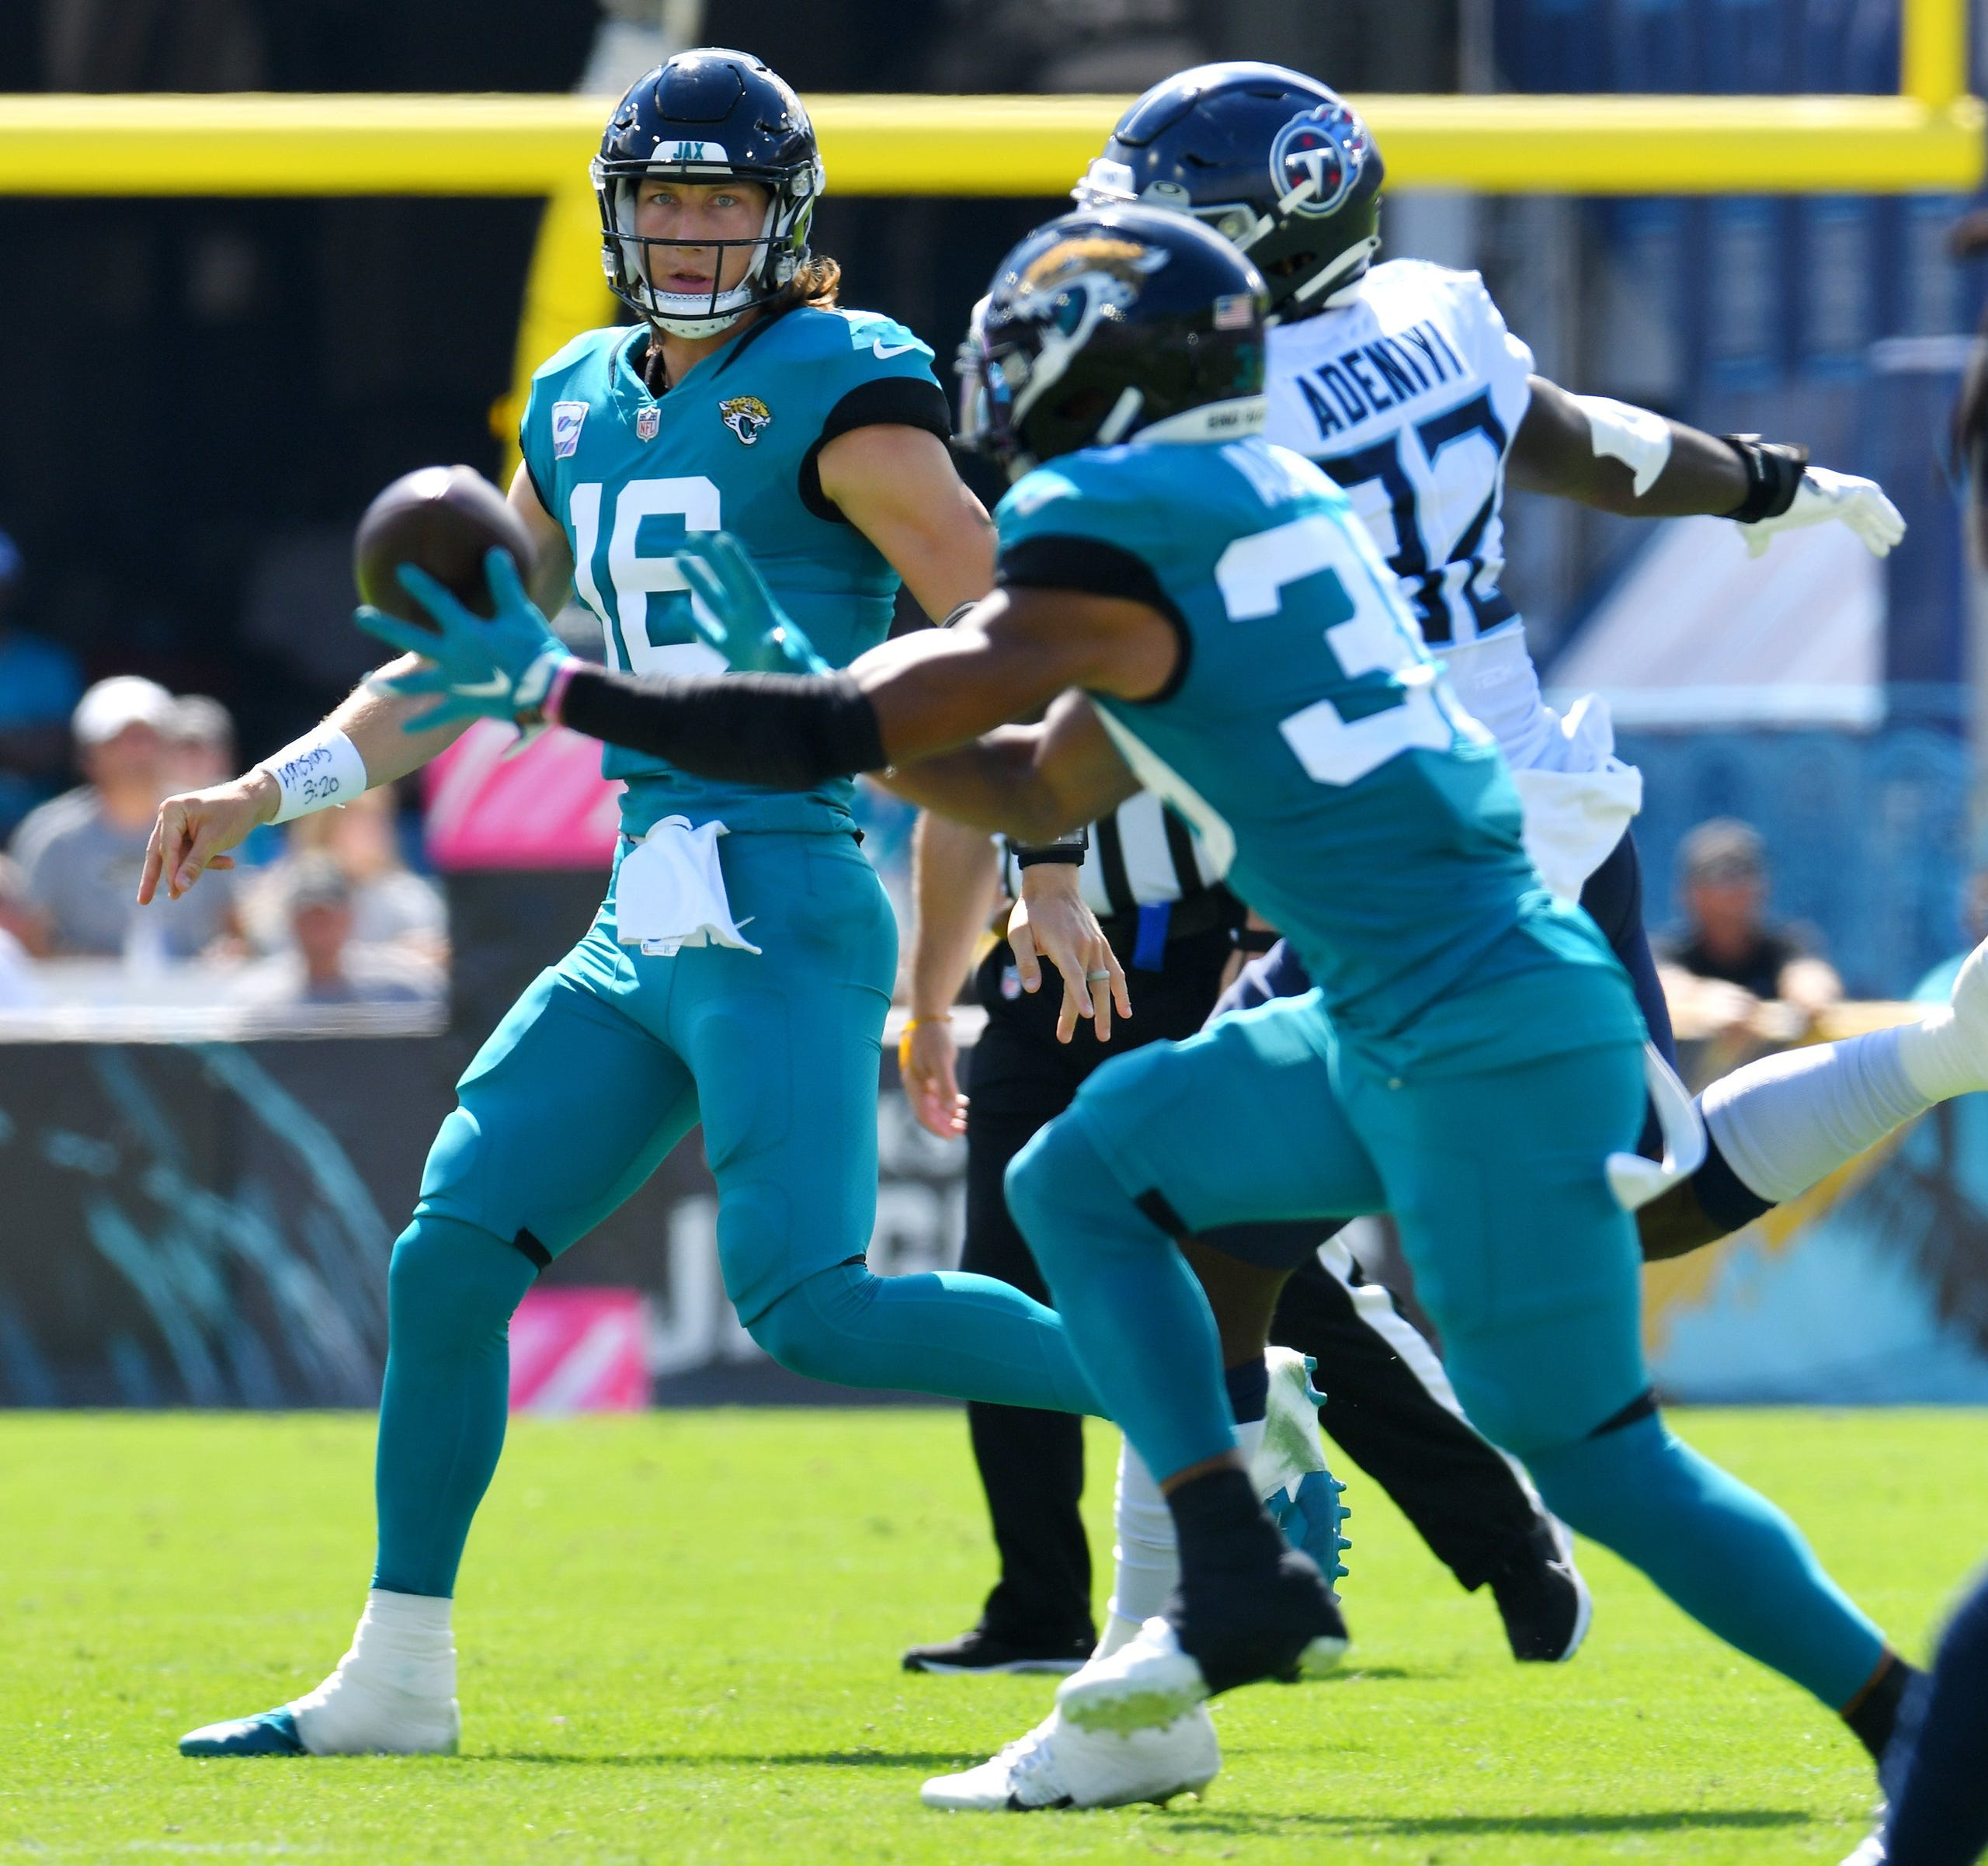 Jacksonville Jaguars quarterback Trevor Lawrence (16) launches an early second quarter pass to Jacksonville Jaguars wide receiver Jamal Agnew (39) against the Tennessee Titans on October 10, 2021. [Bob Self/Florida Times-Union]